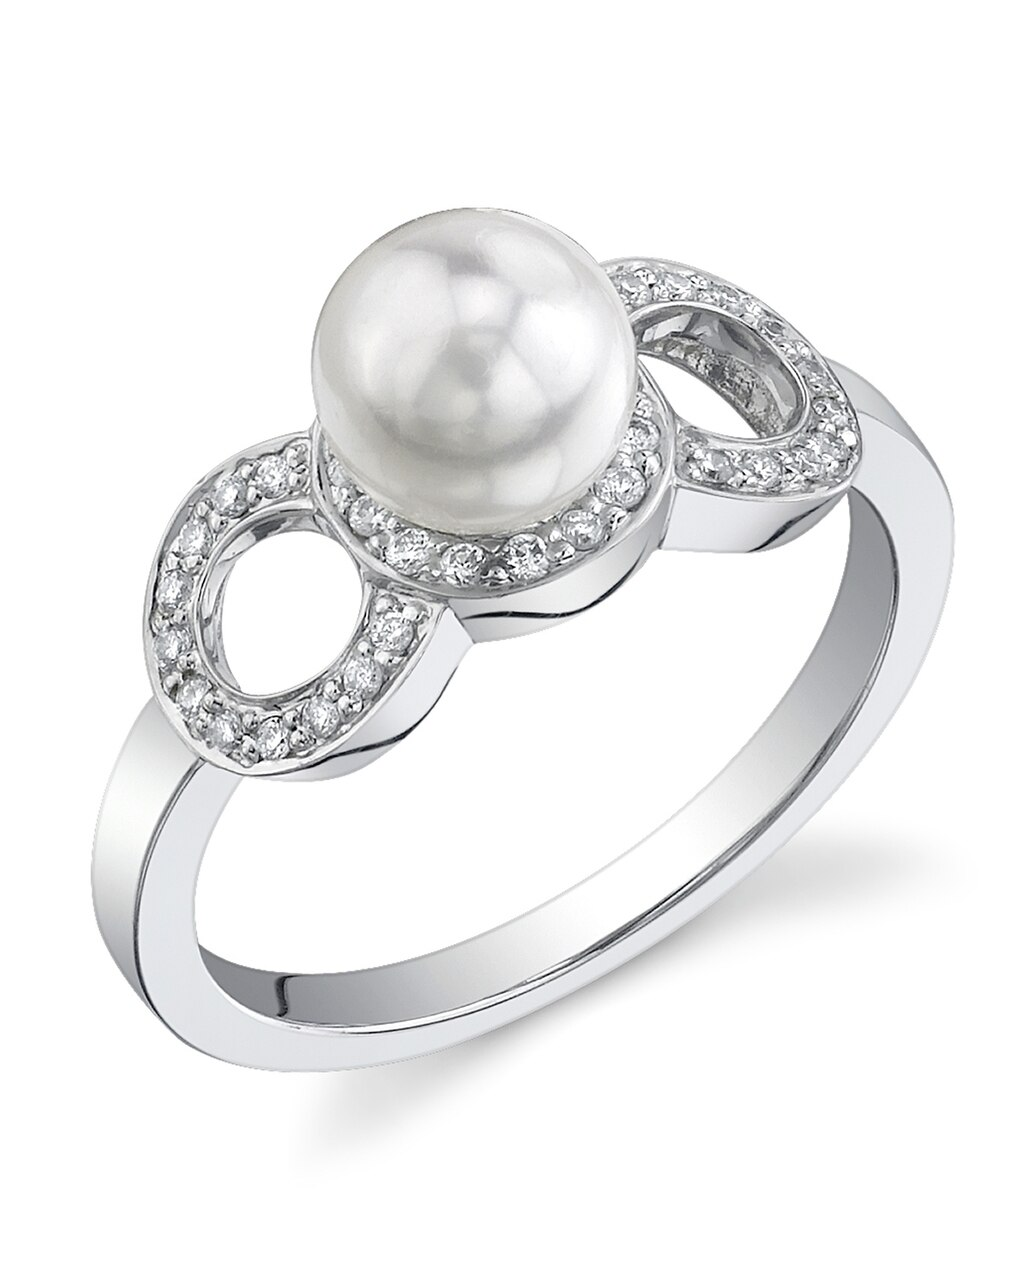 This exquisite ring features an 6.5-7.0mm Japanese Akoya pearl, handpicked for its luminous luster